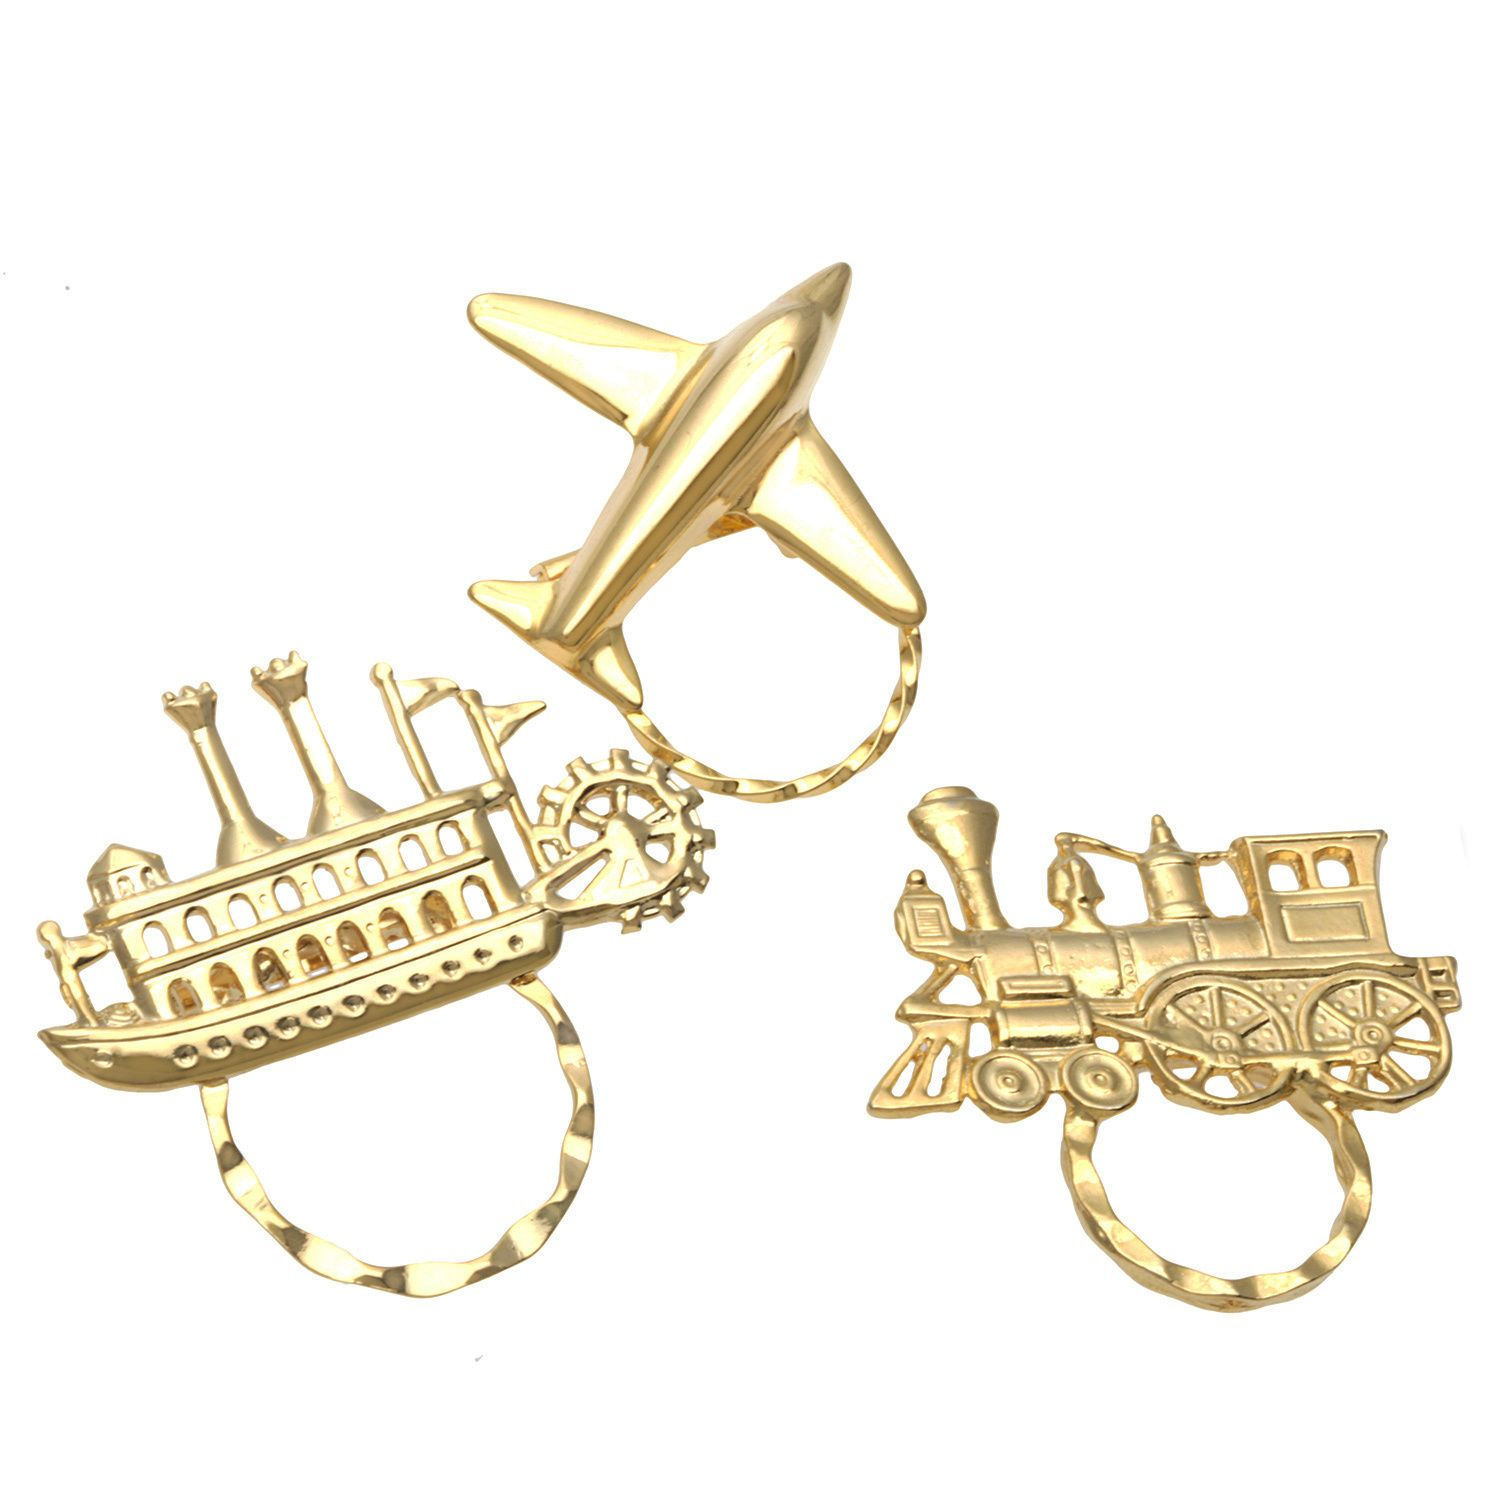 Detti Originals Spec Train Steamboat and Airplane 3-piece Spectacle Brooch Set